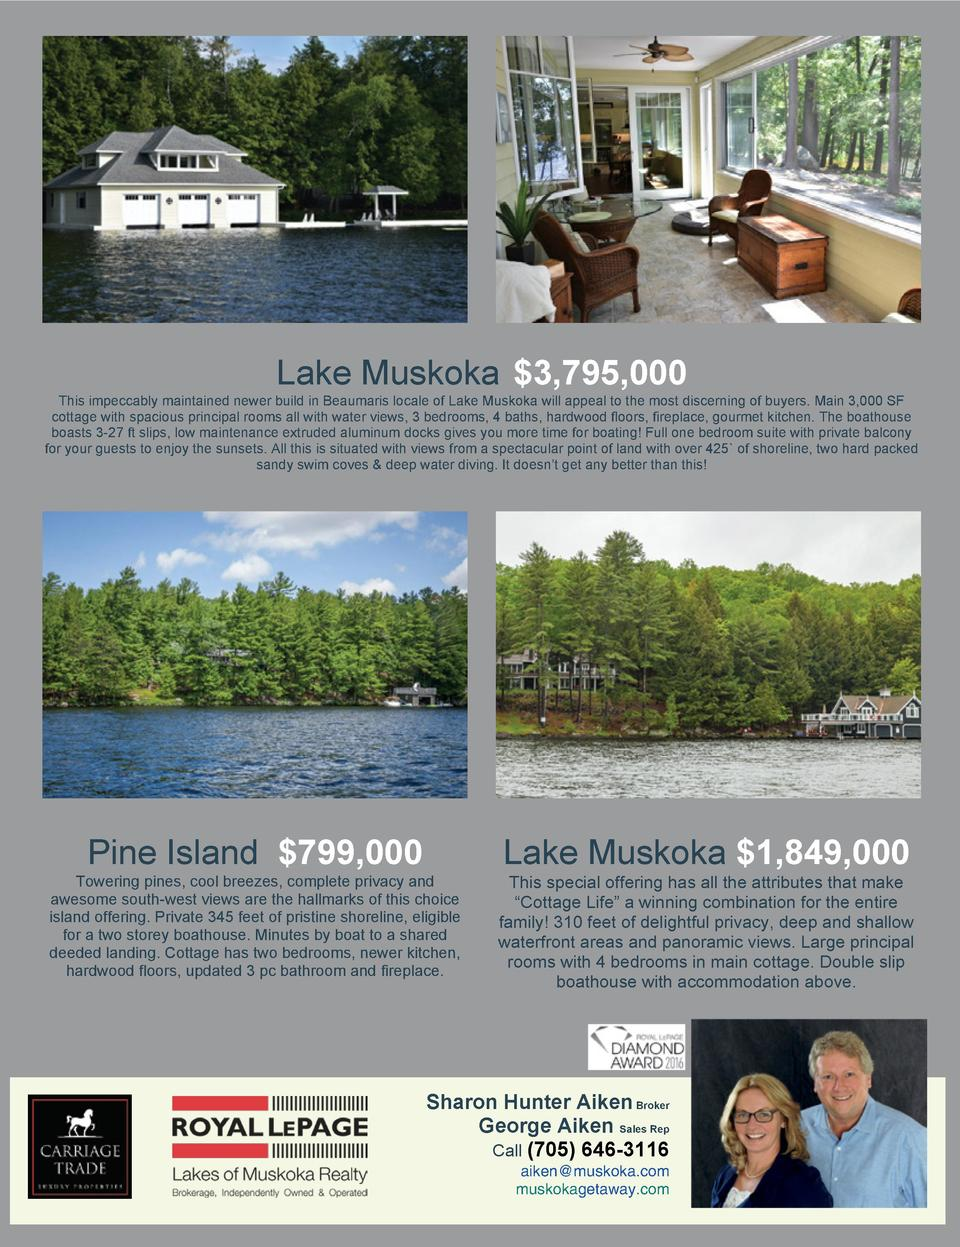 Lake Muskoka  3,795,000  This impeccably maintained newer build in Beaumaris locale of Lake Muskoka will appeal to the mos...